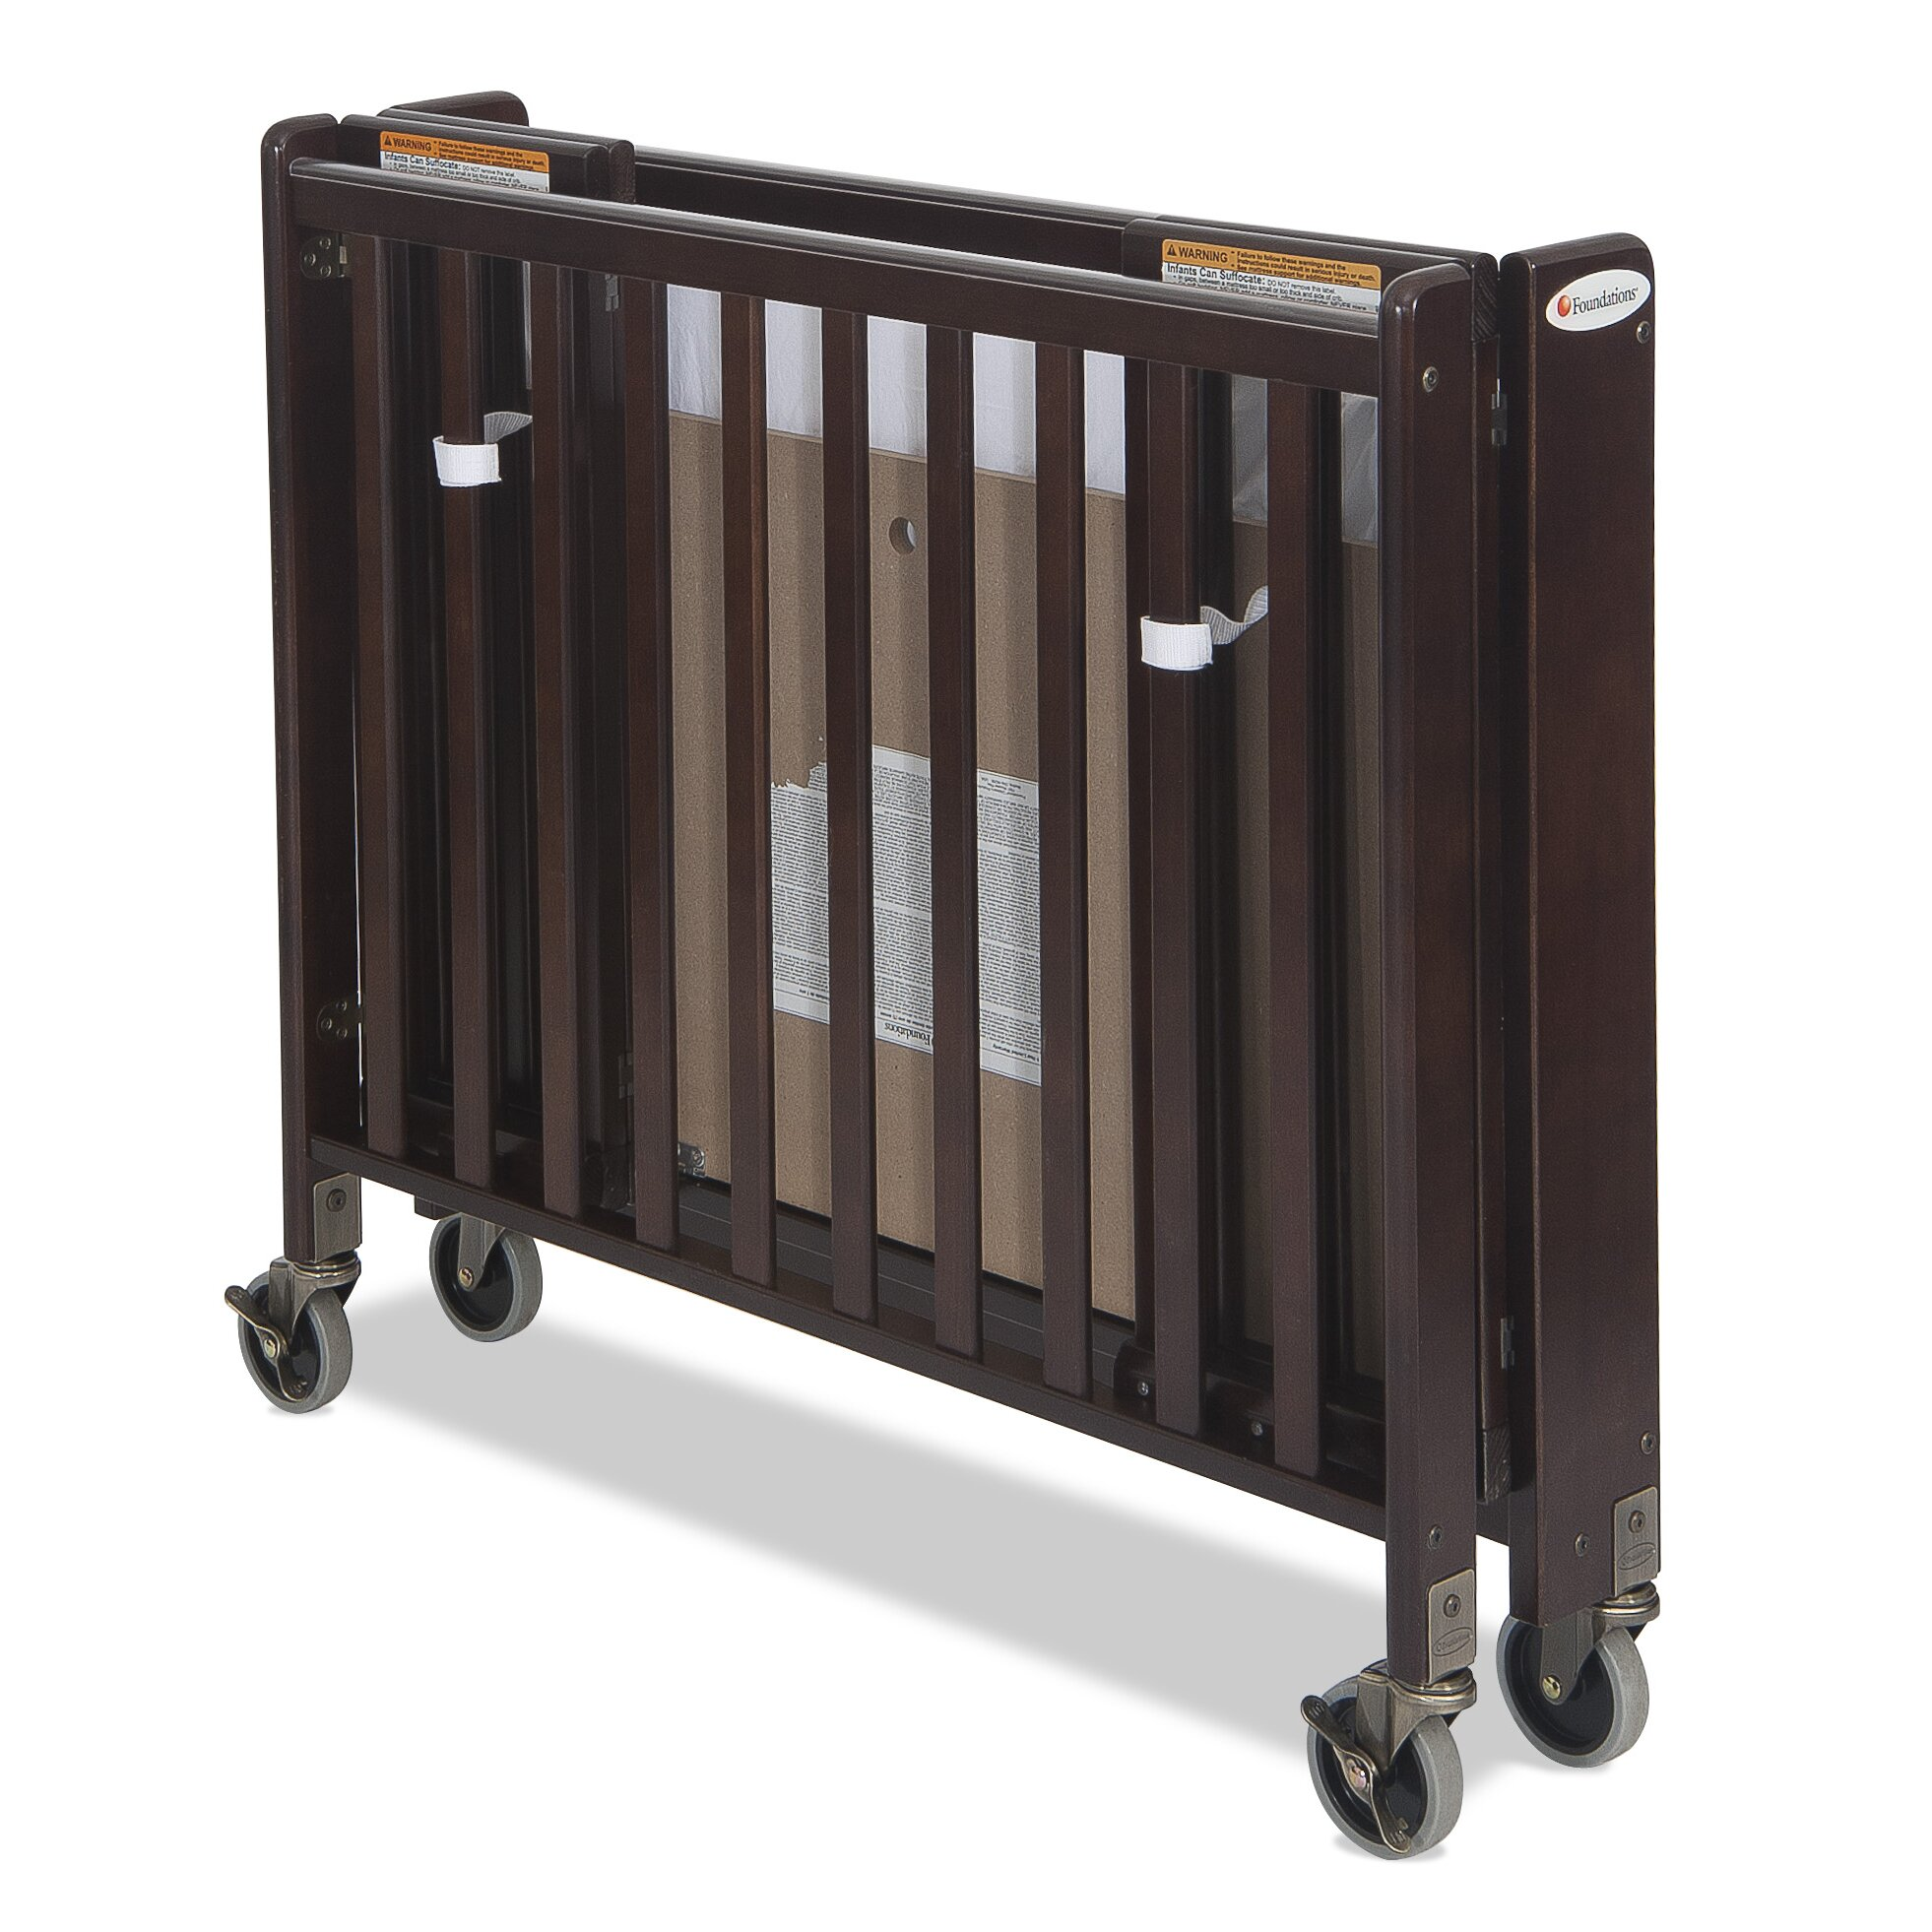 Crib for sale san diego - Foundations Hideaway Storable Wood Convertible Crib With Mattress